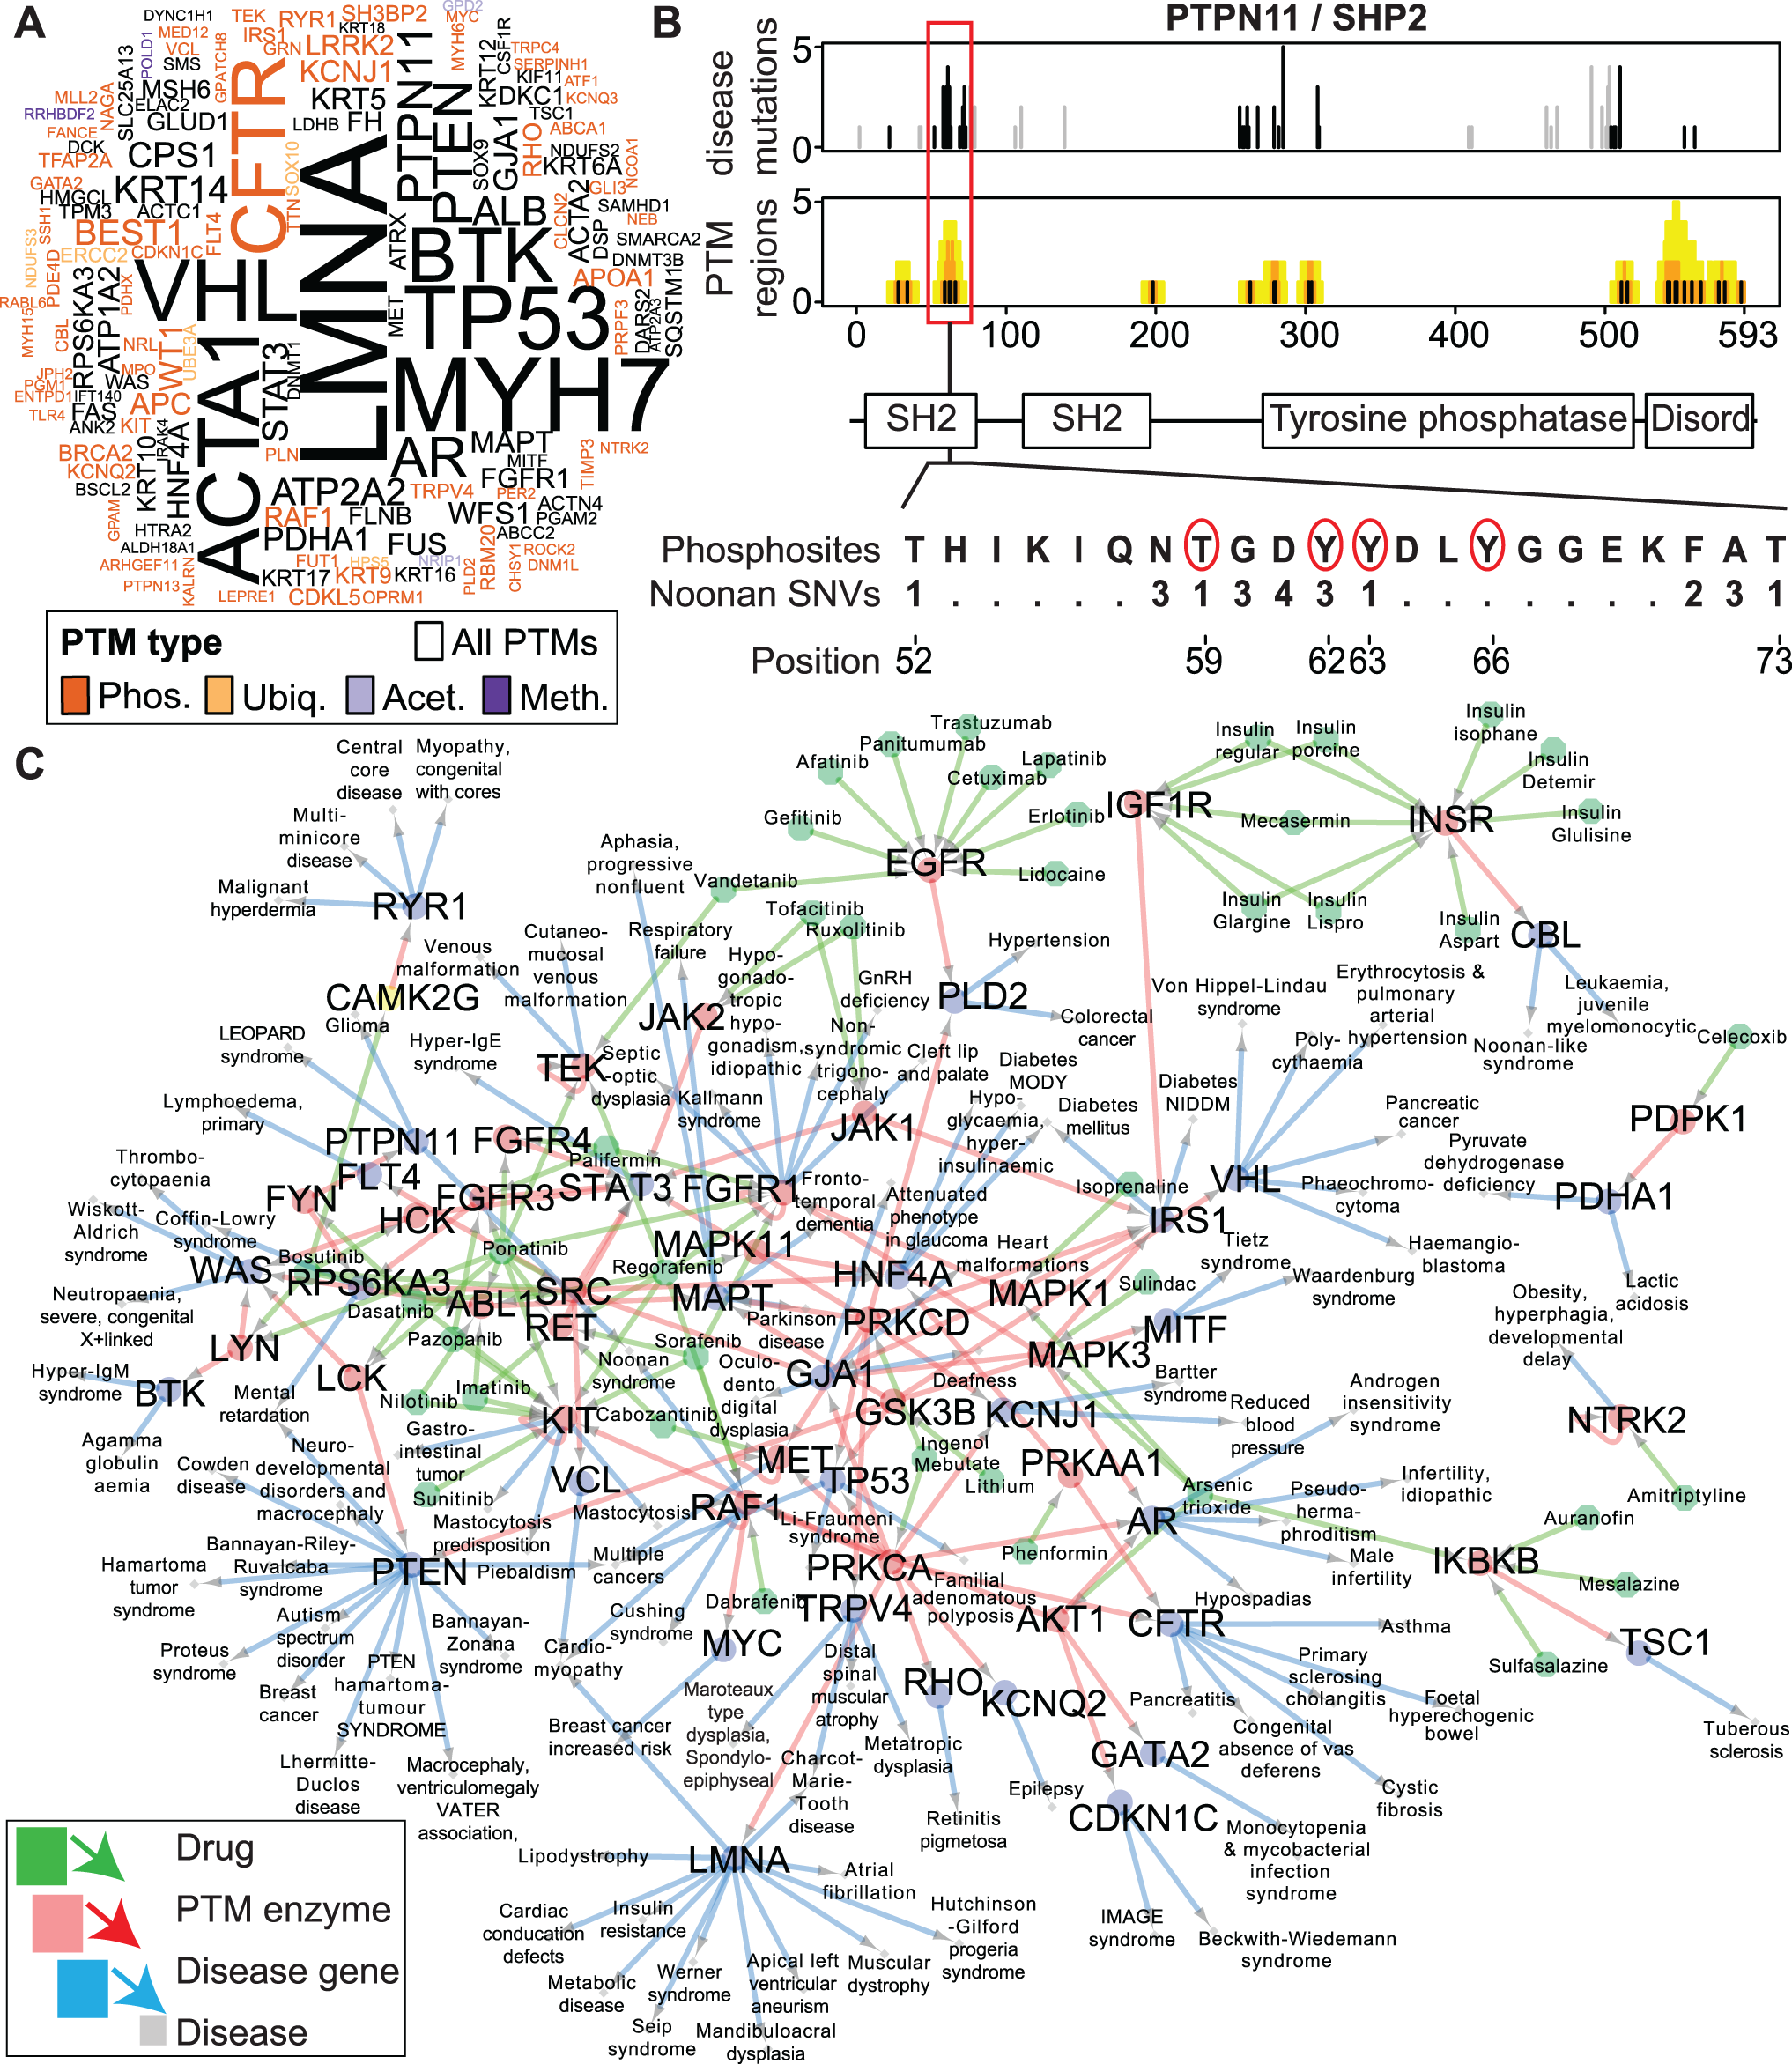 Enriched disease mutations and drug interactions of PTM regions.